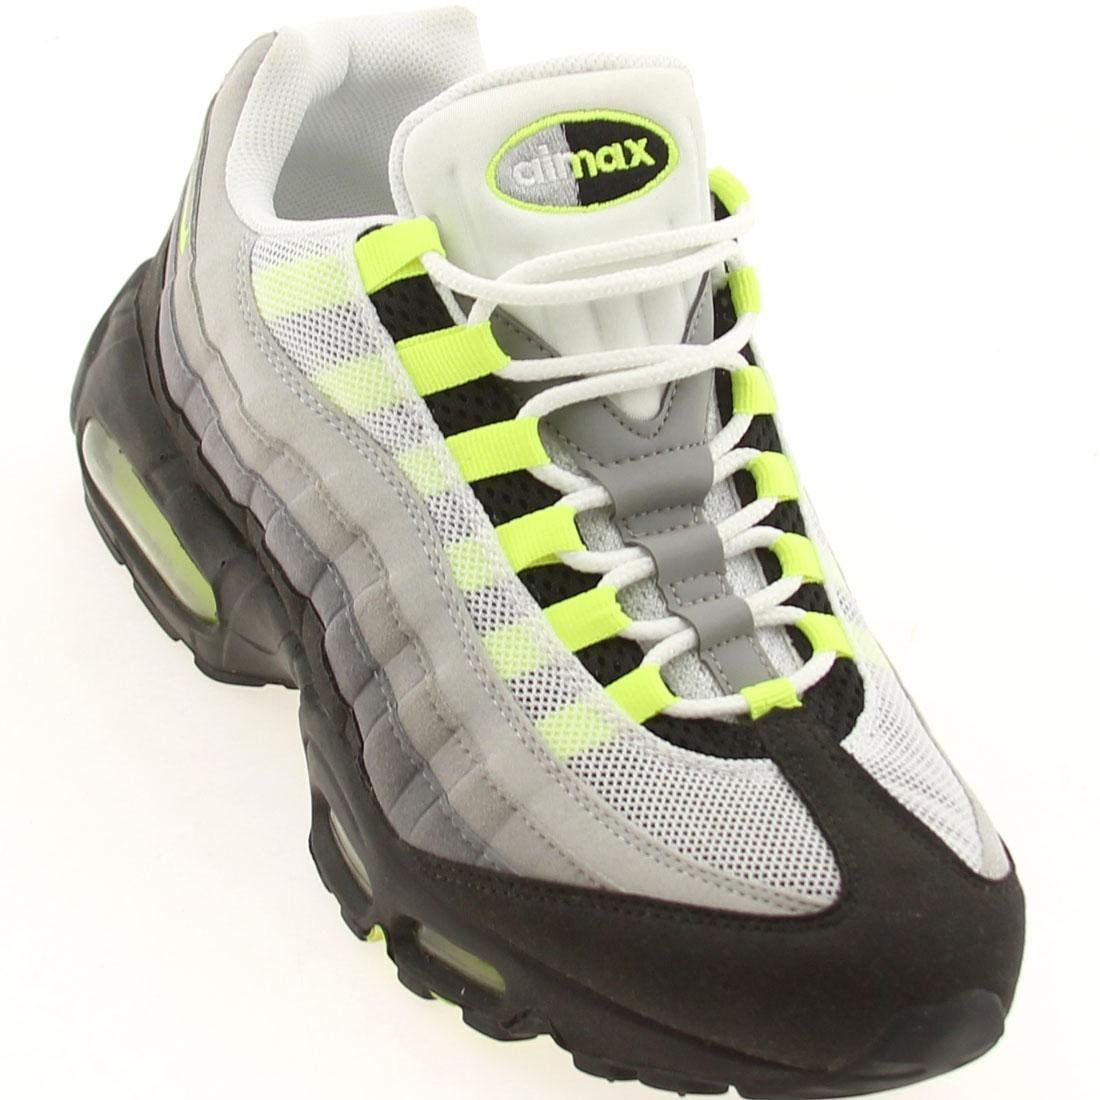 NIKE Men's Air Max 95 Premium Running Shoe B0038URPY8 10.5 D(M) US|Cool Grey/Neon Yellow